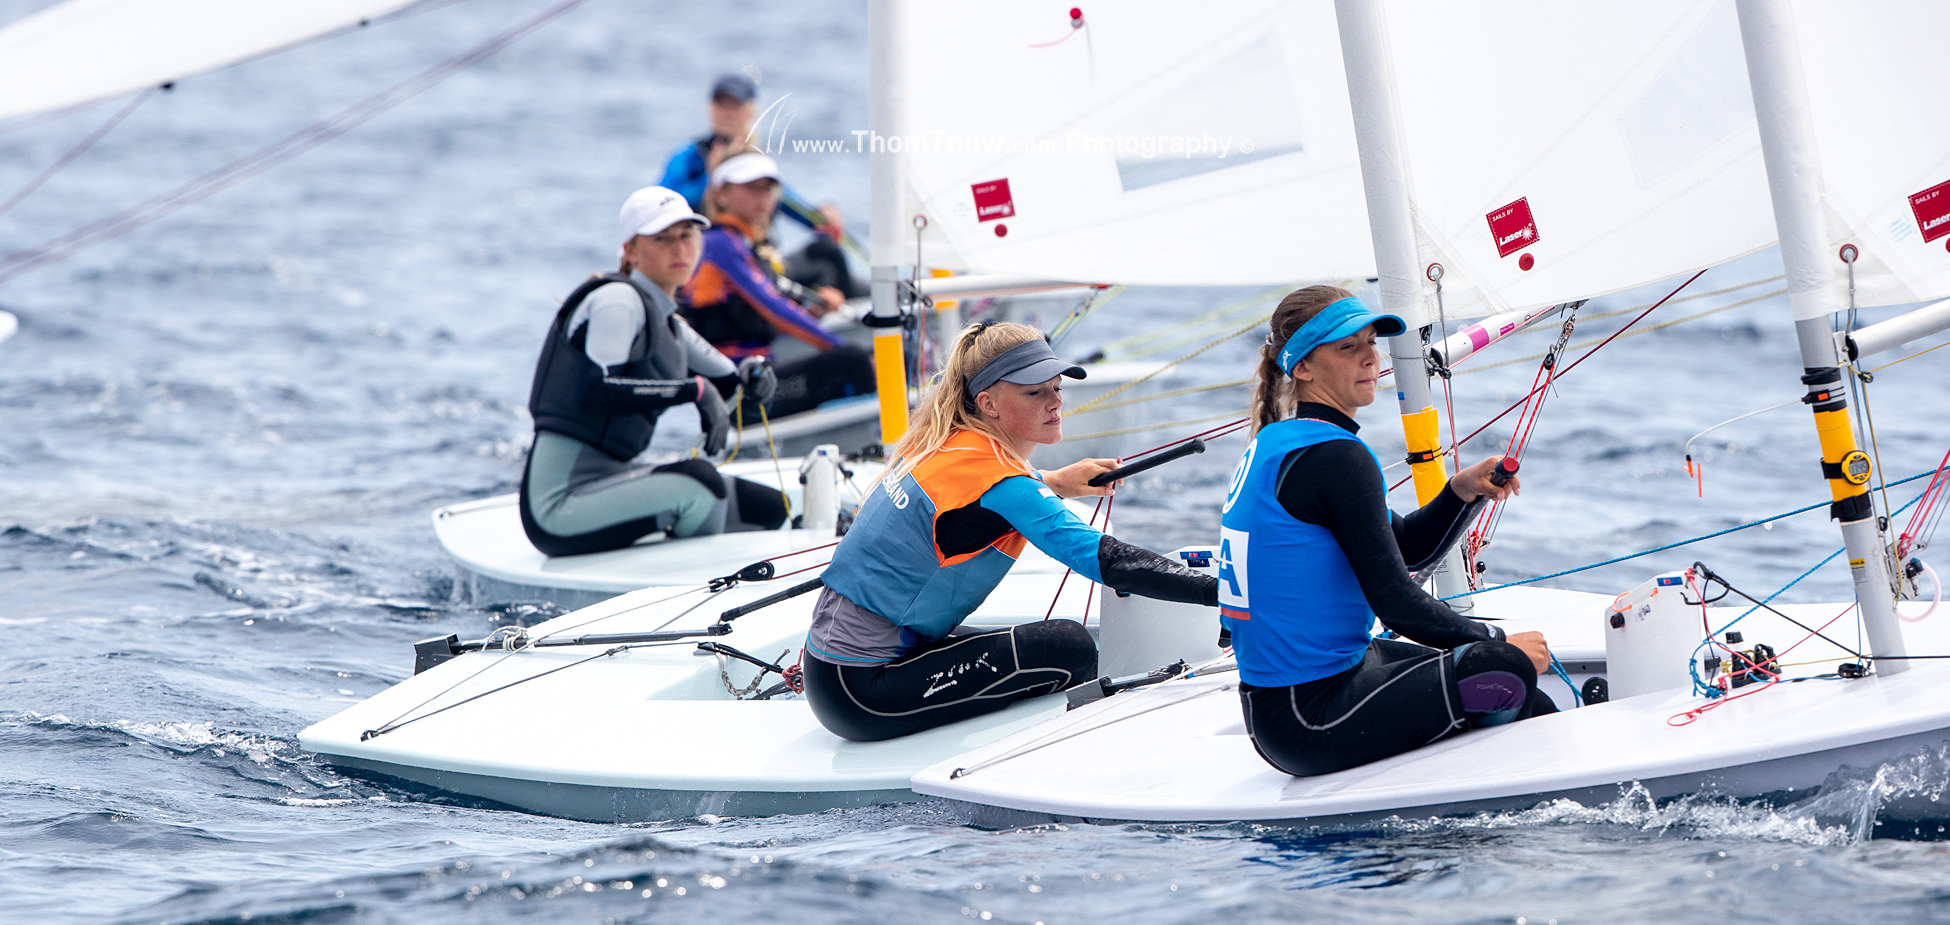 2019 Laser 47 Youth Europeans Final Results